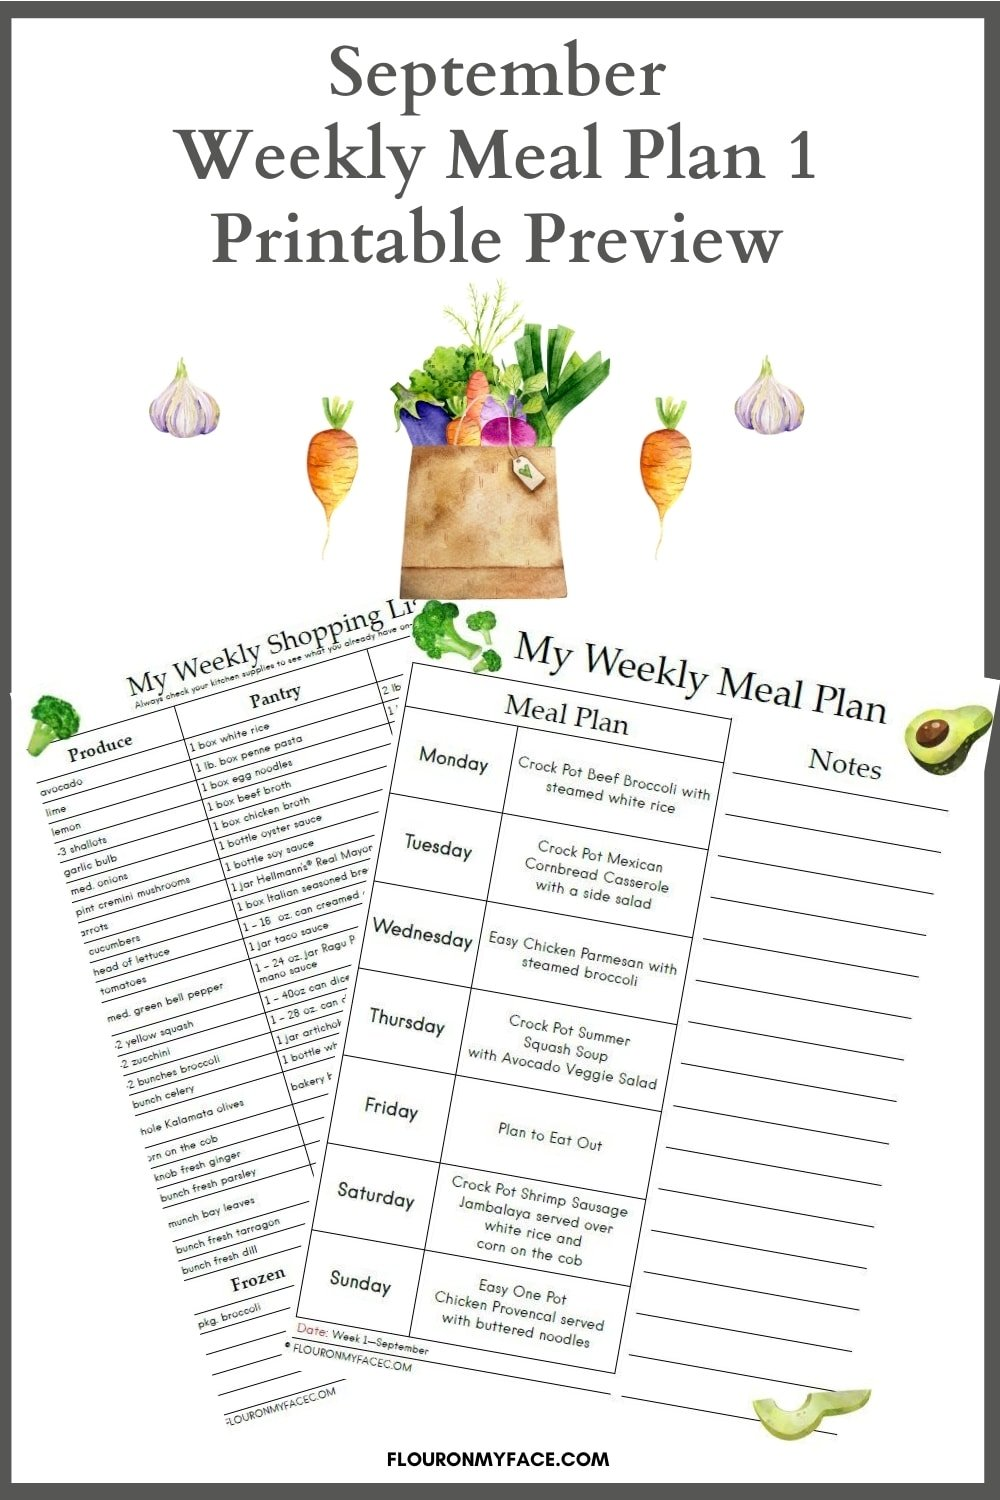 Preview of the September Meal Plan with a free printable menu plan and shopping list.